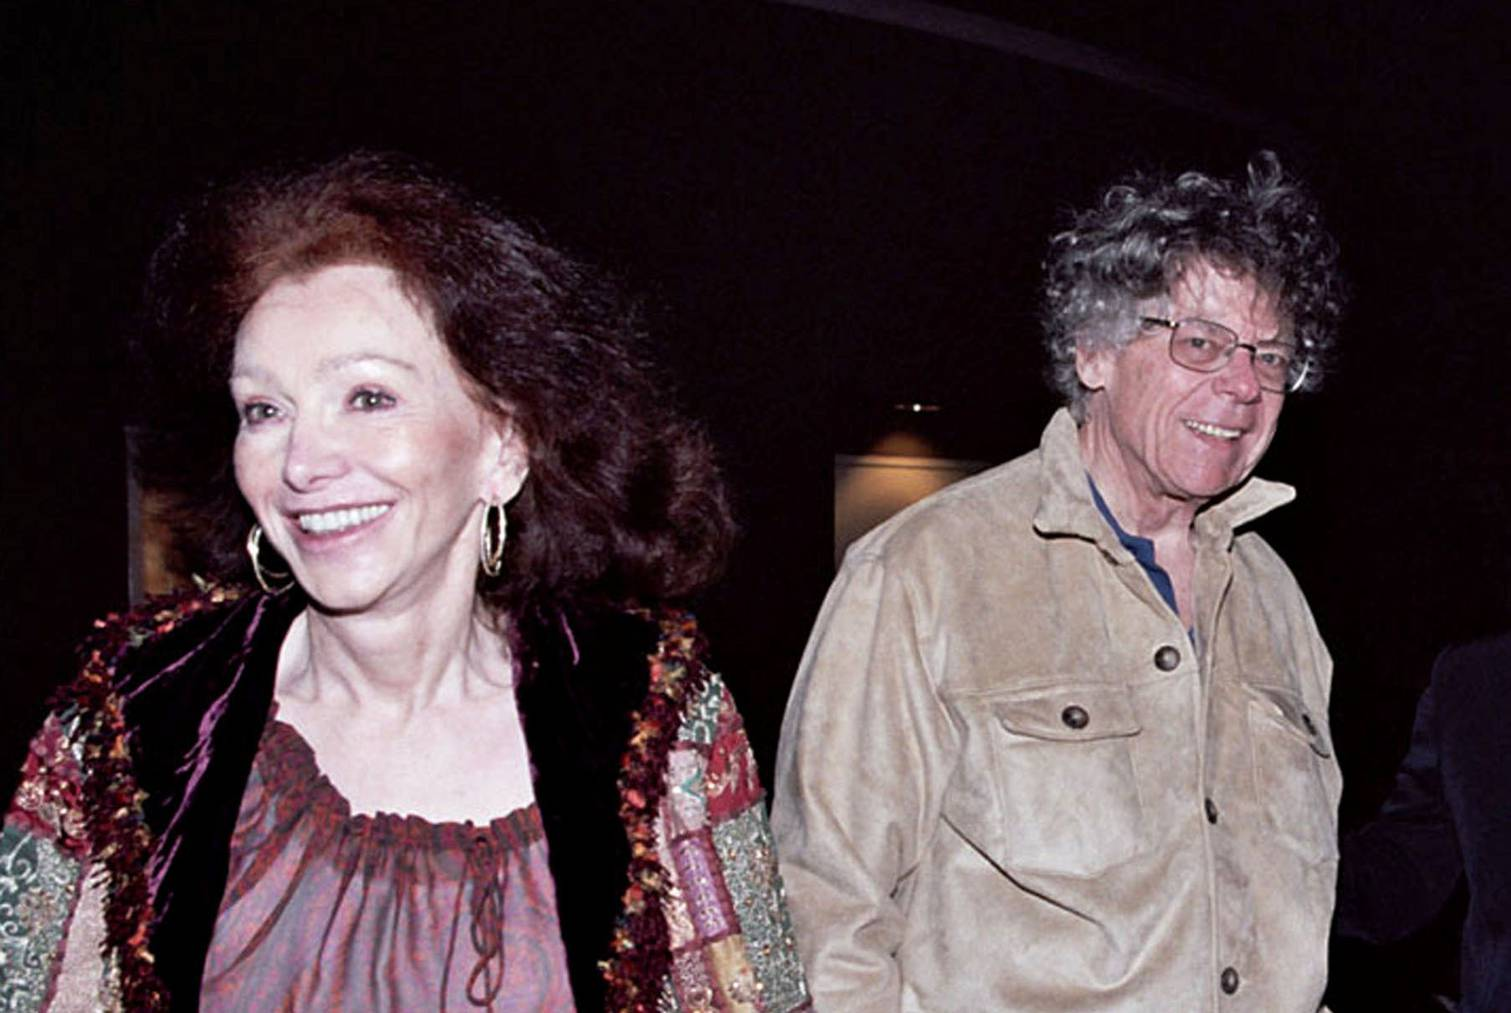 Ann und Gordon Getty im Jahr 2003 in San Francisco. (Bild: Getty Images)